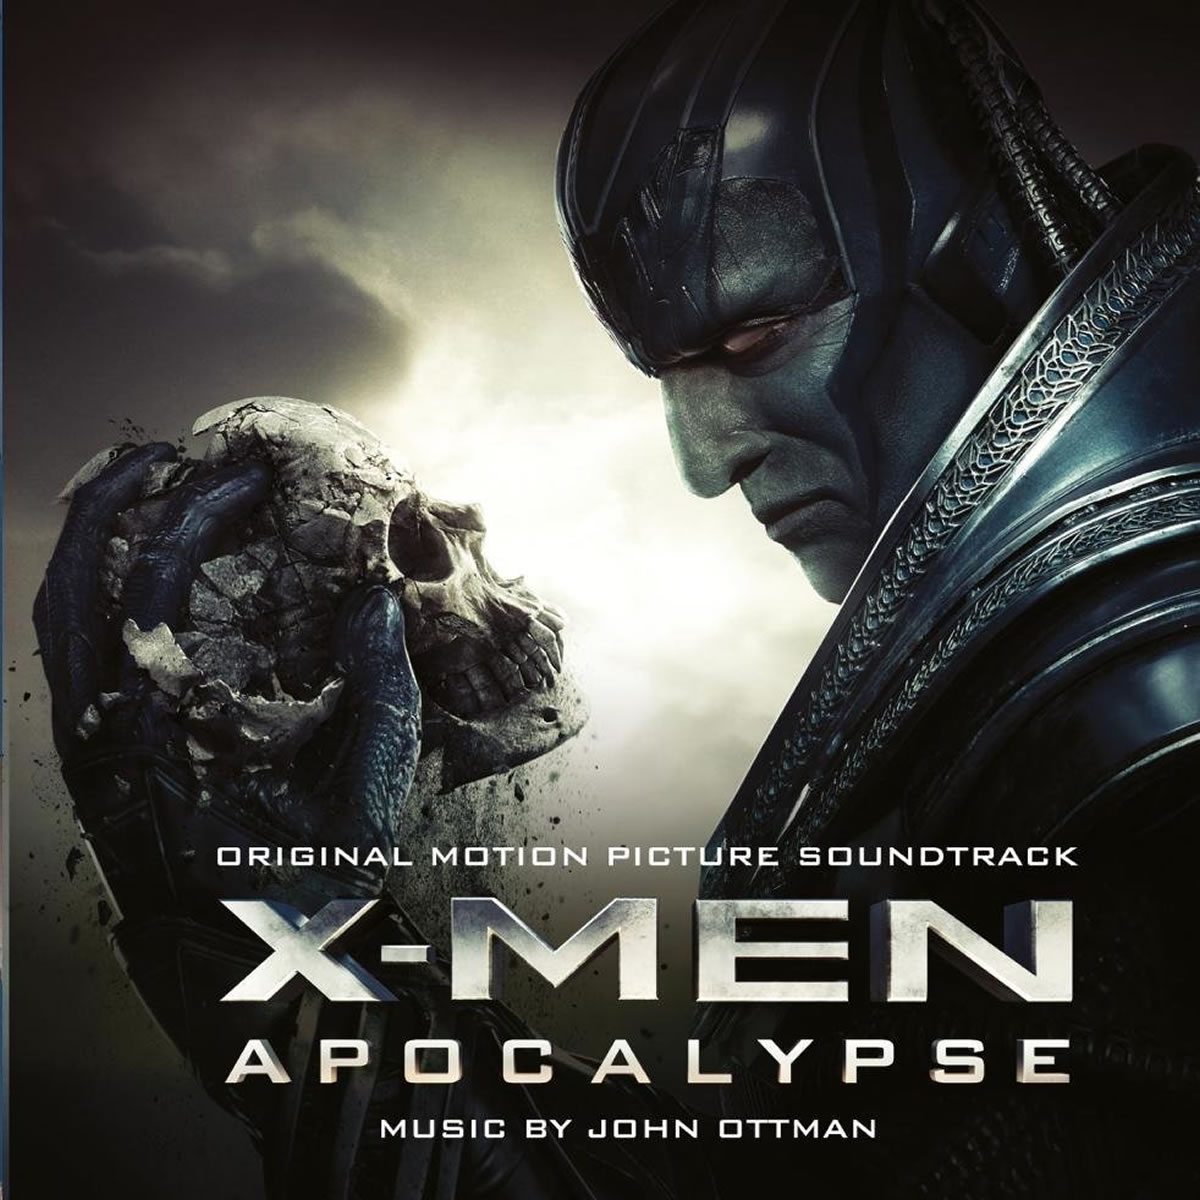 X-MEN: APOCALYPSE - THE ORIGINAL MOTION PICTURE SOUNDTRACK (AUDIO CD)